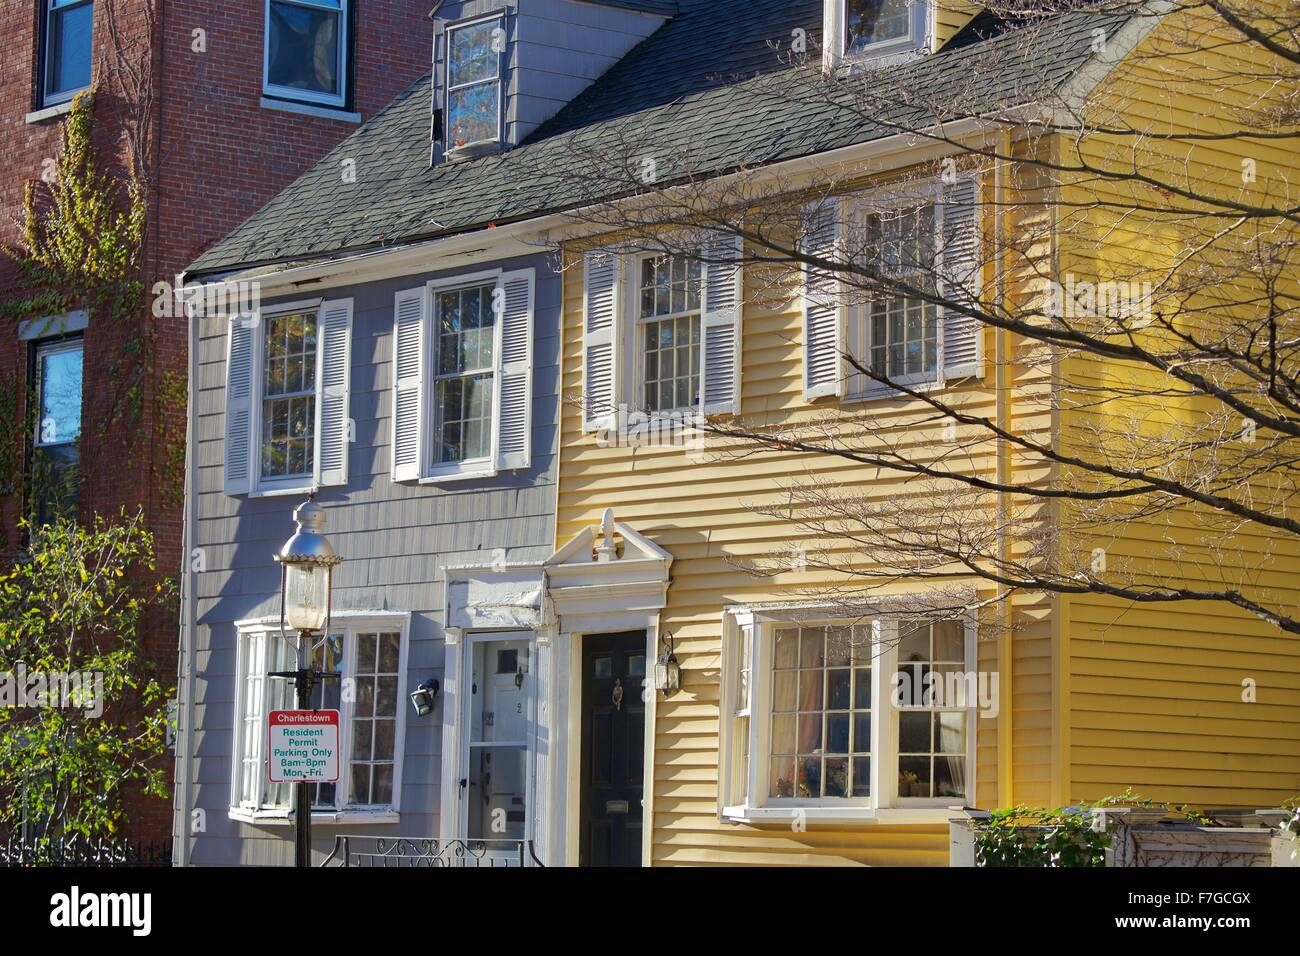 Charming yellow houses in Charlestown, Massachusetts - Stock Image